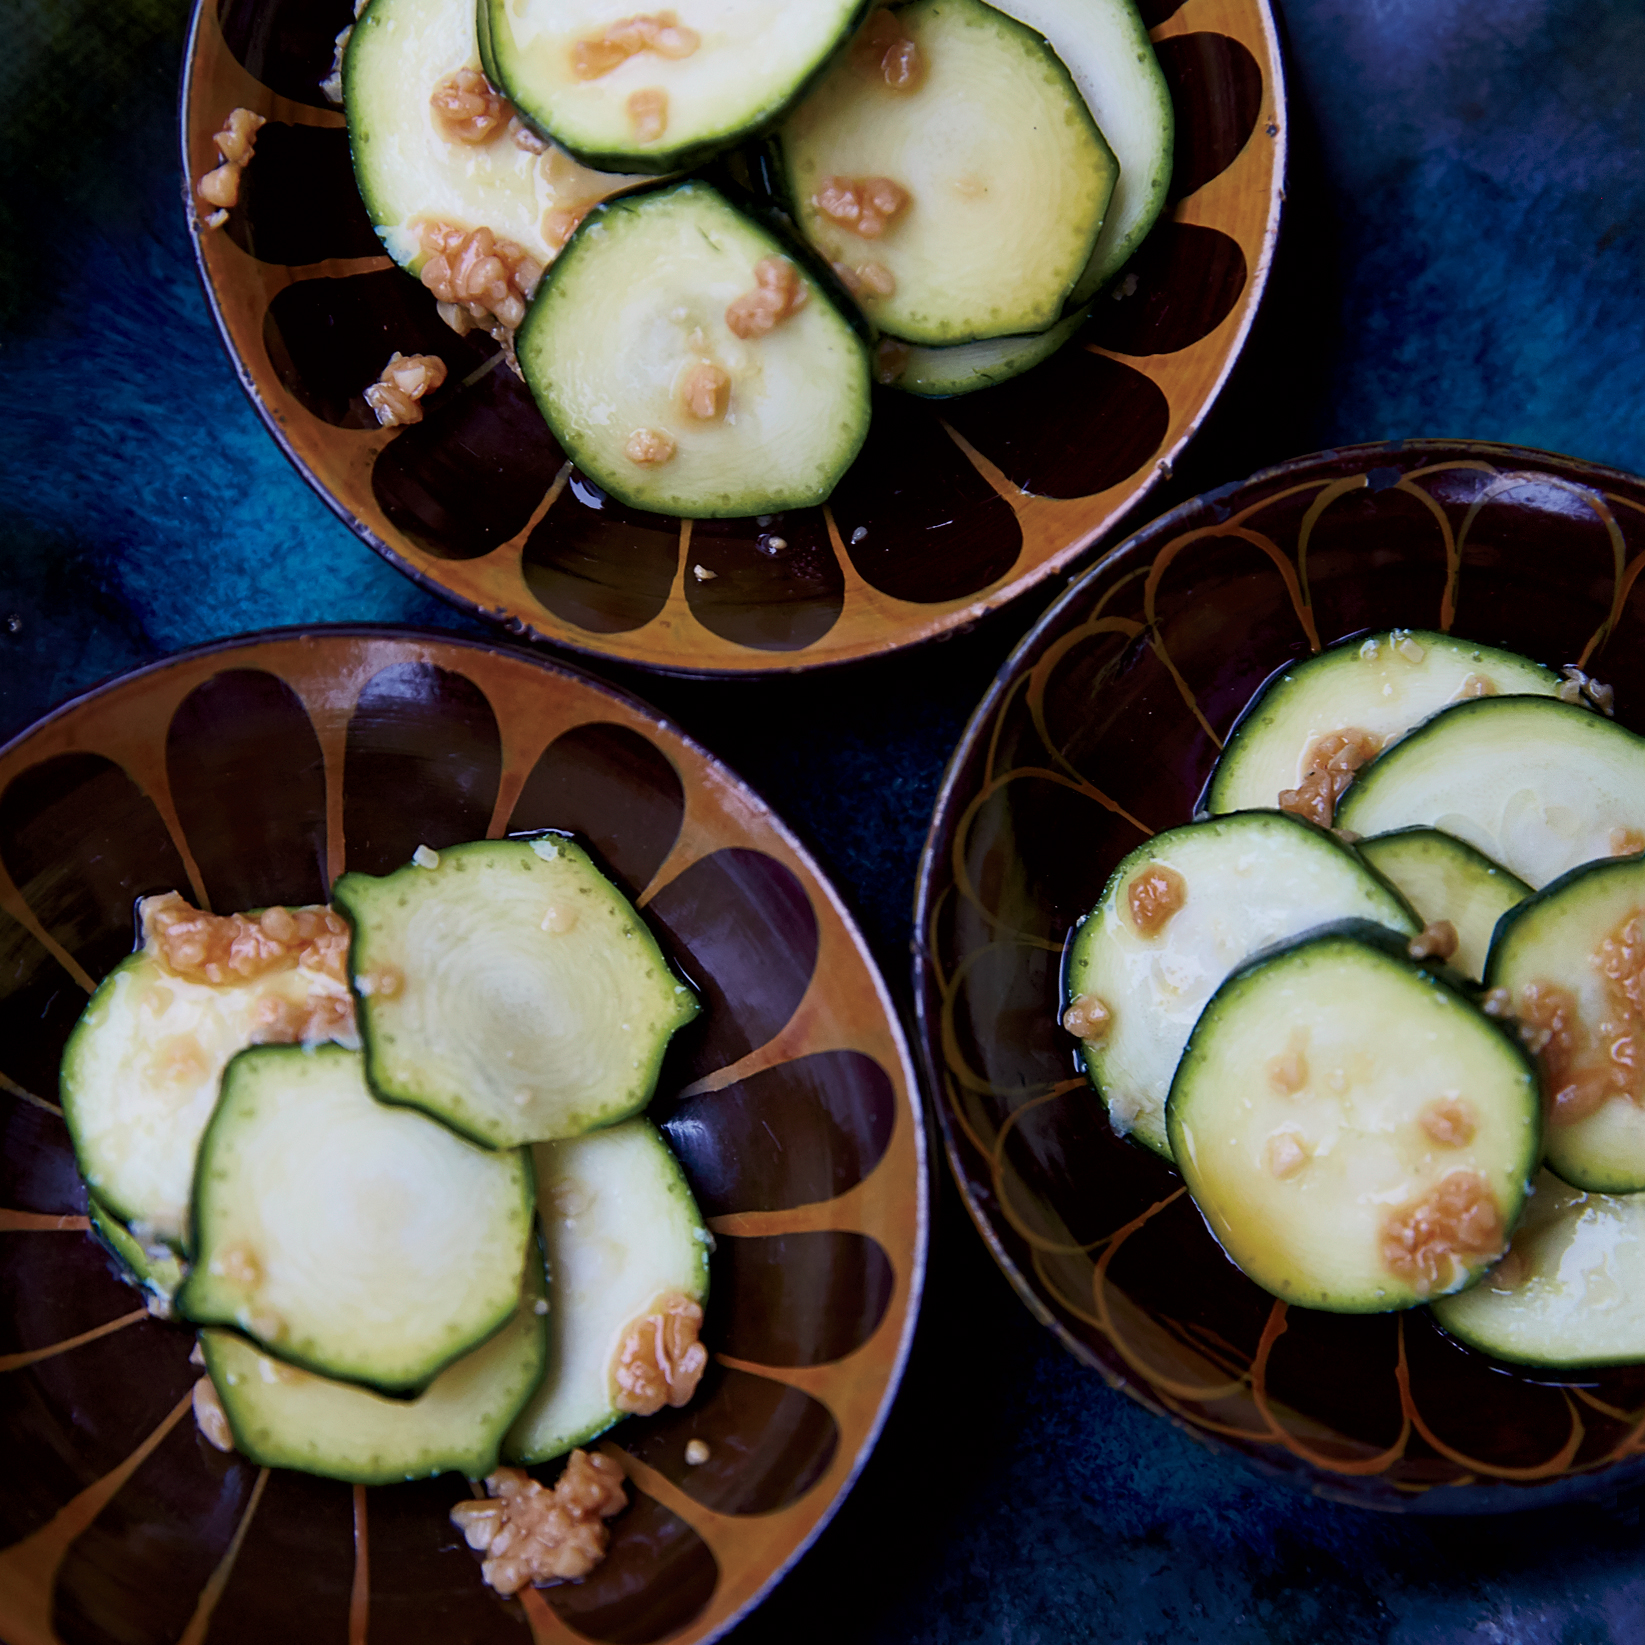 201409-r-quick-soy-pickled-zucchini.jpg